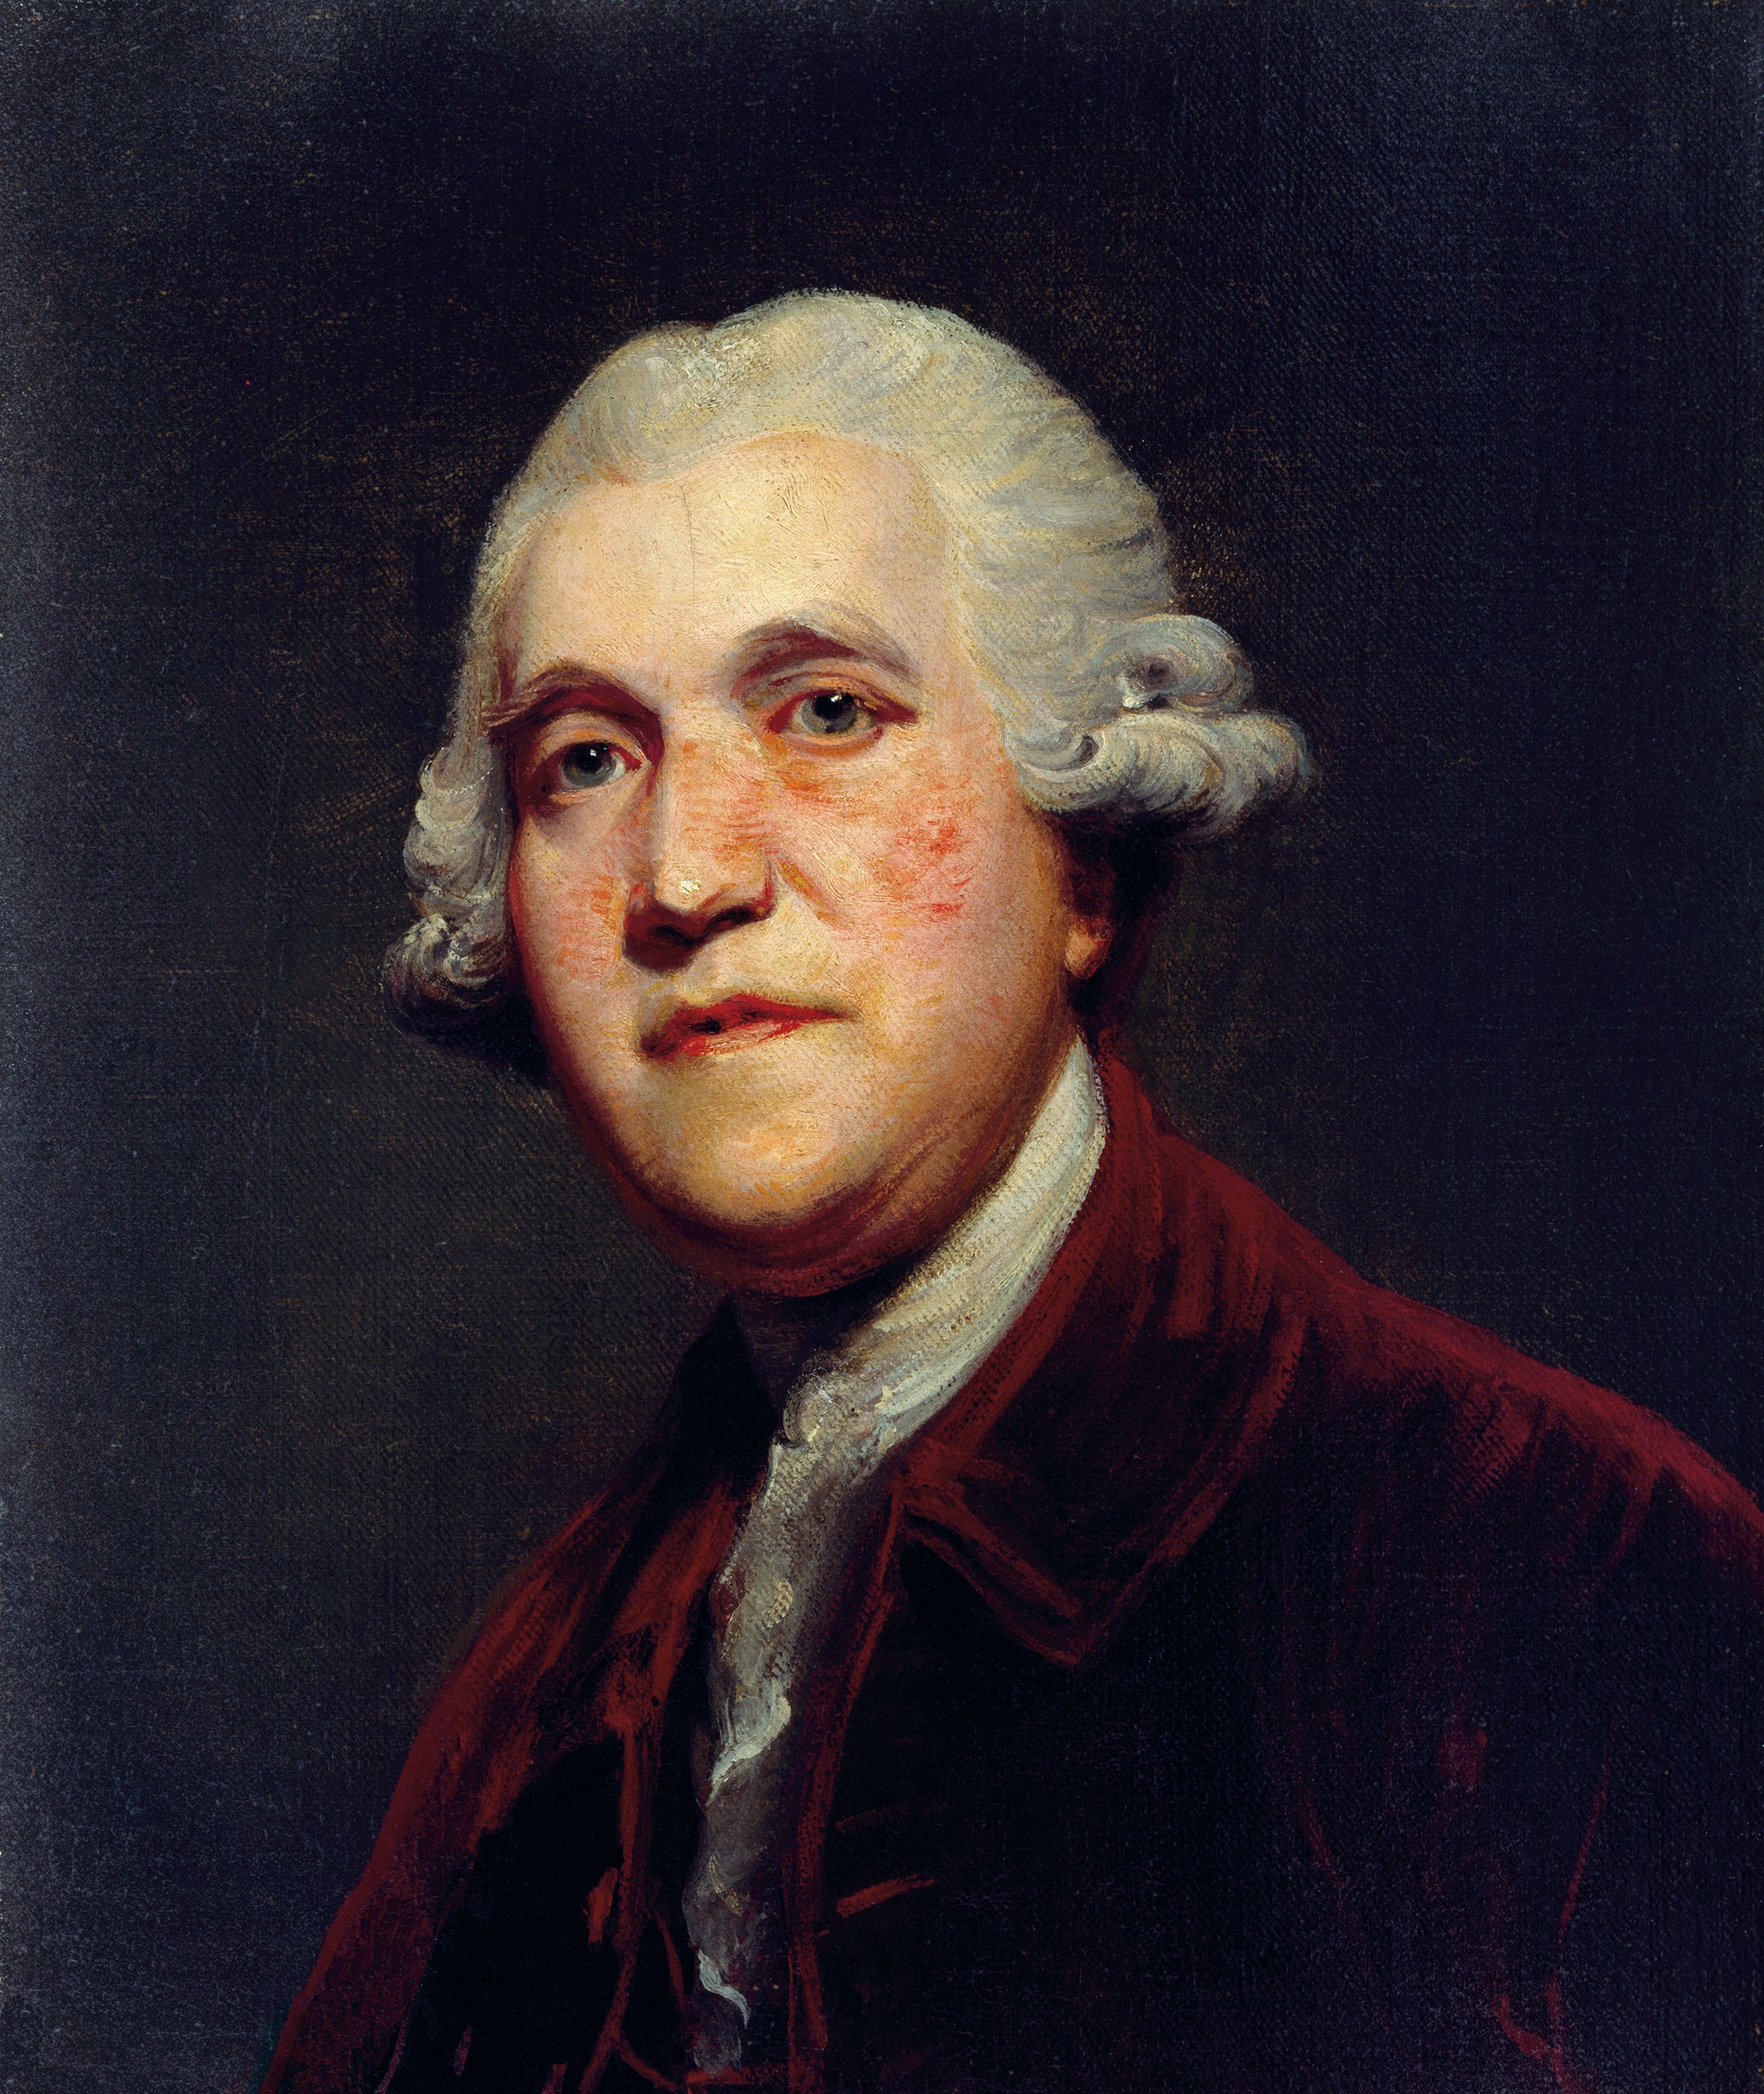 Josiah Wedgwood: The radical potter who shaped our politics